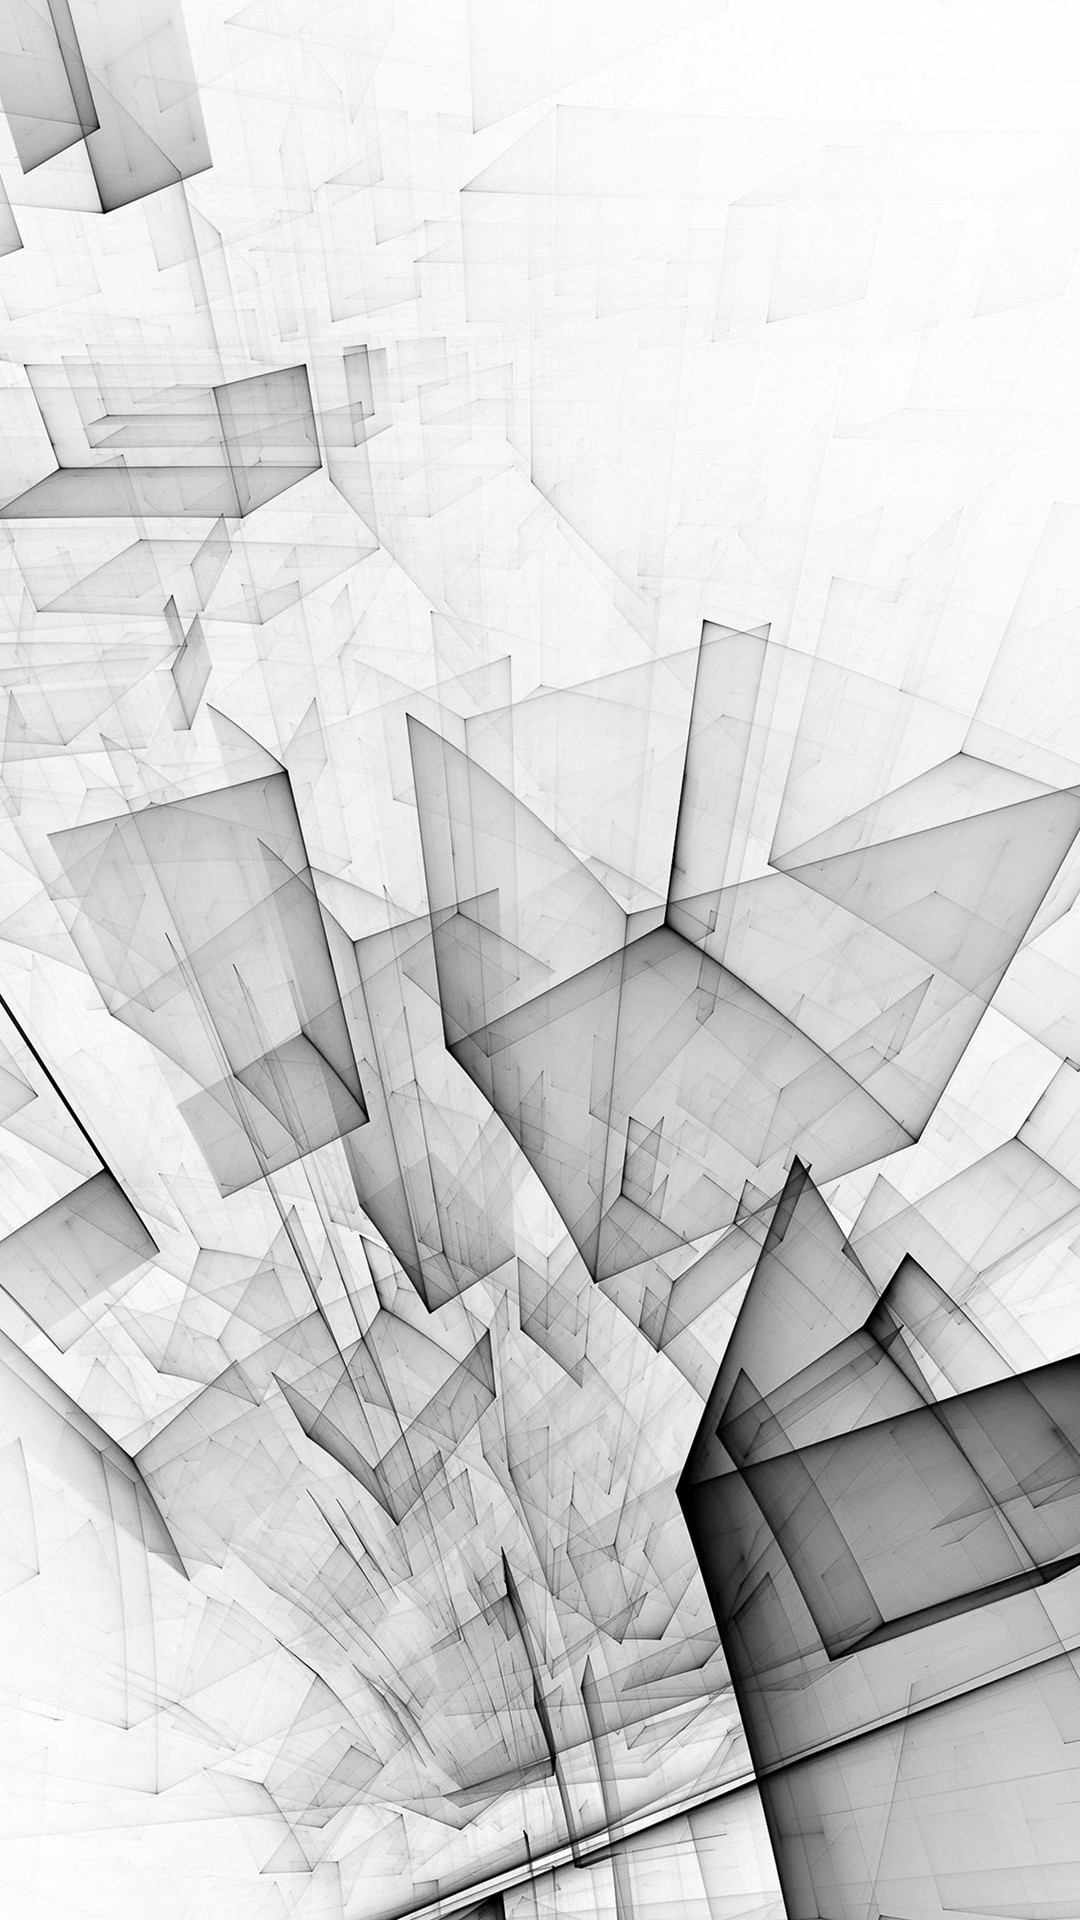 Abstract Bw White Cube Pattern iPhone 8 wallpaper